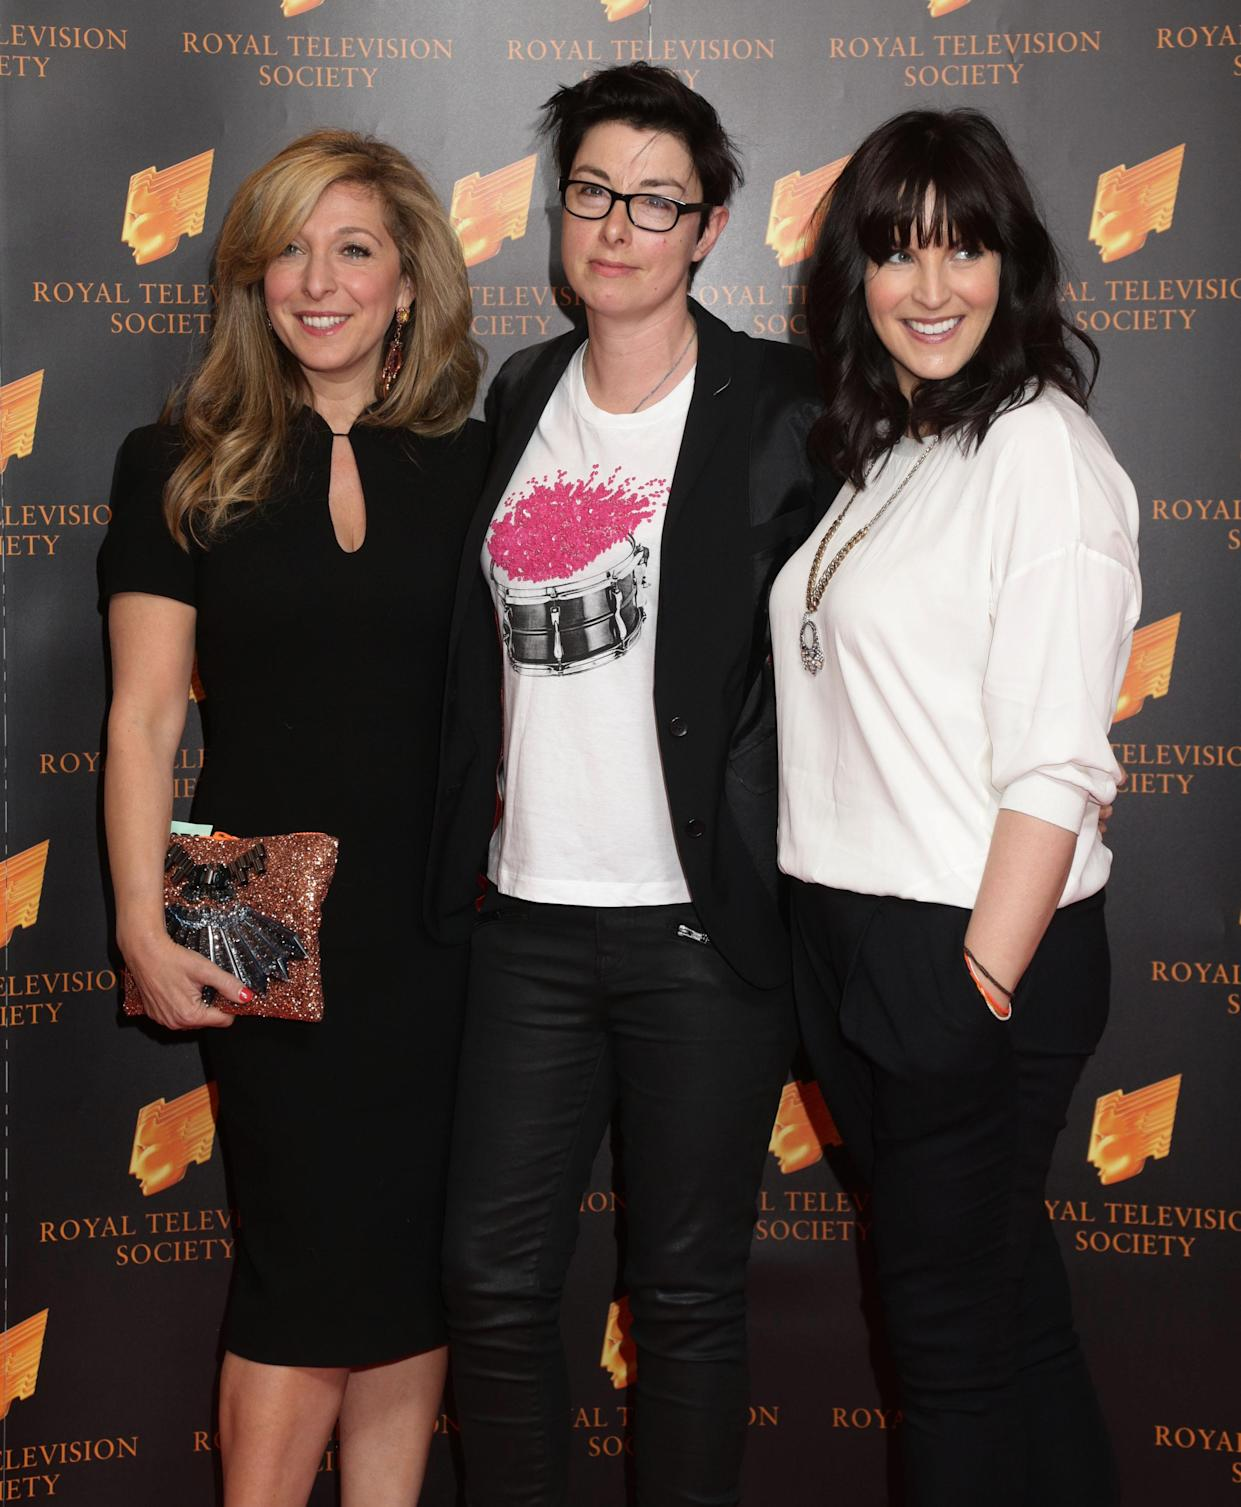 Tracy-Ann Oberman, Sue Perkins and Anna Richardson attending the Royal Television Society Programme Awards at the Grosvenor House Hotel, London.